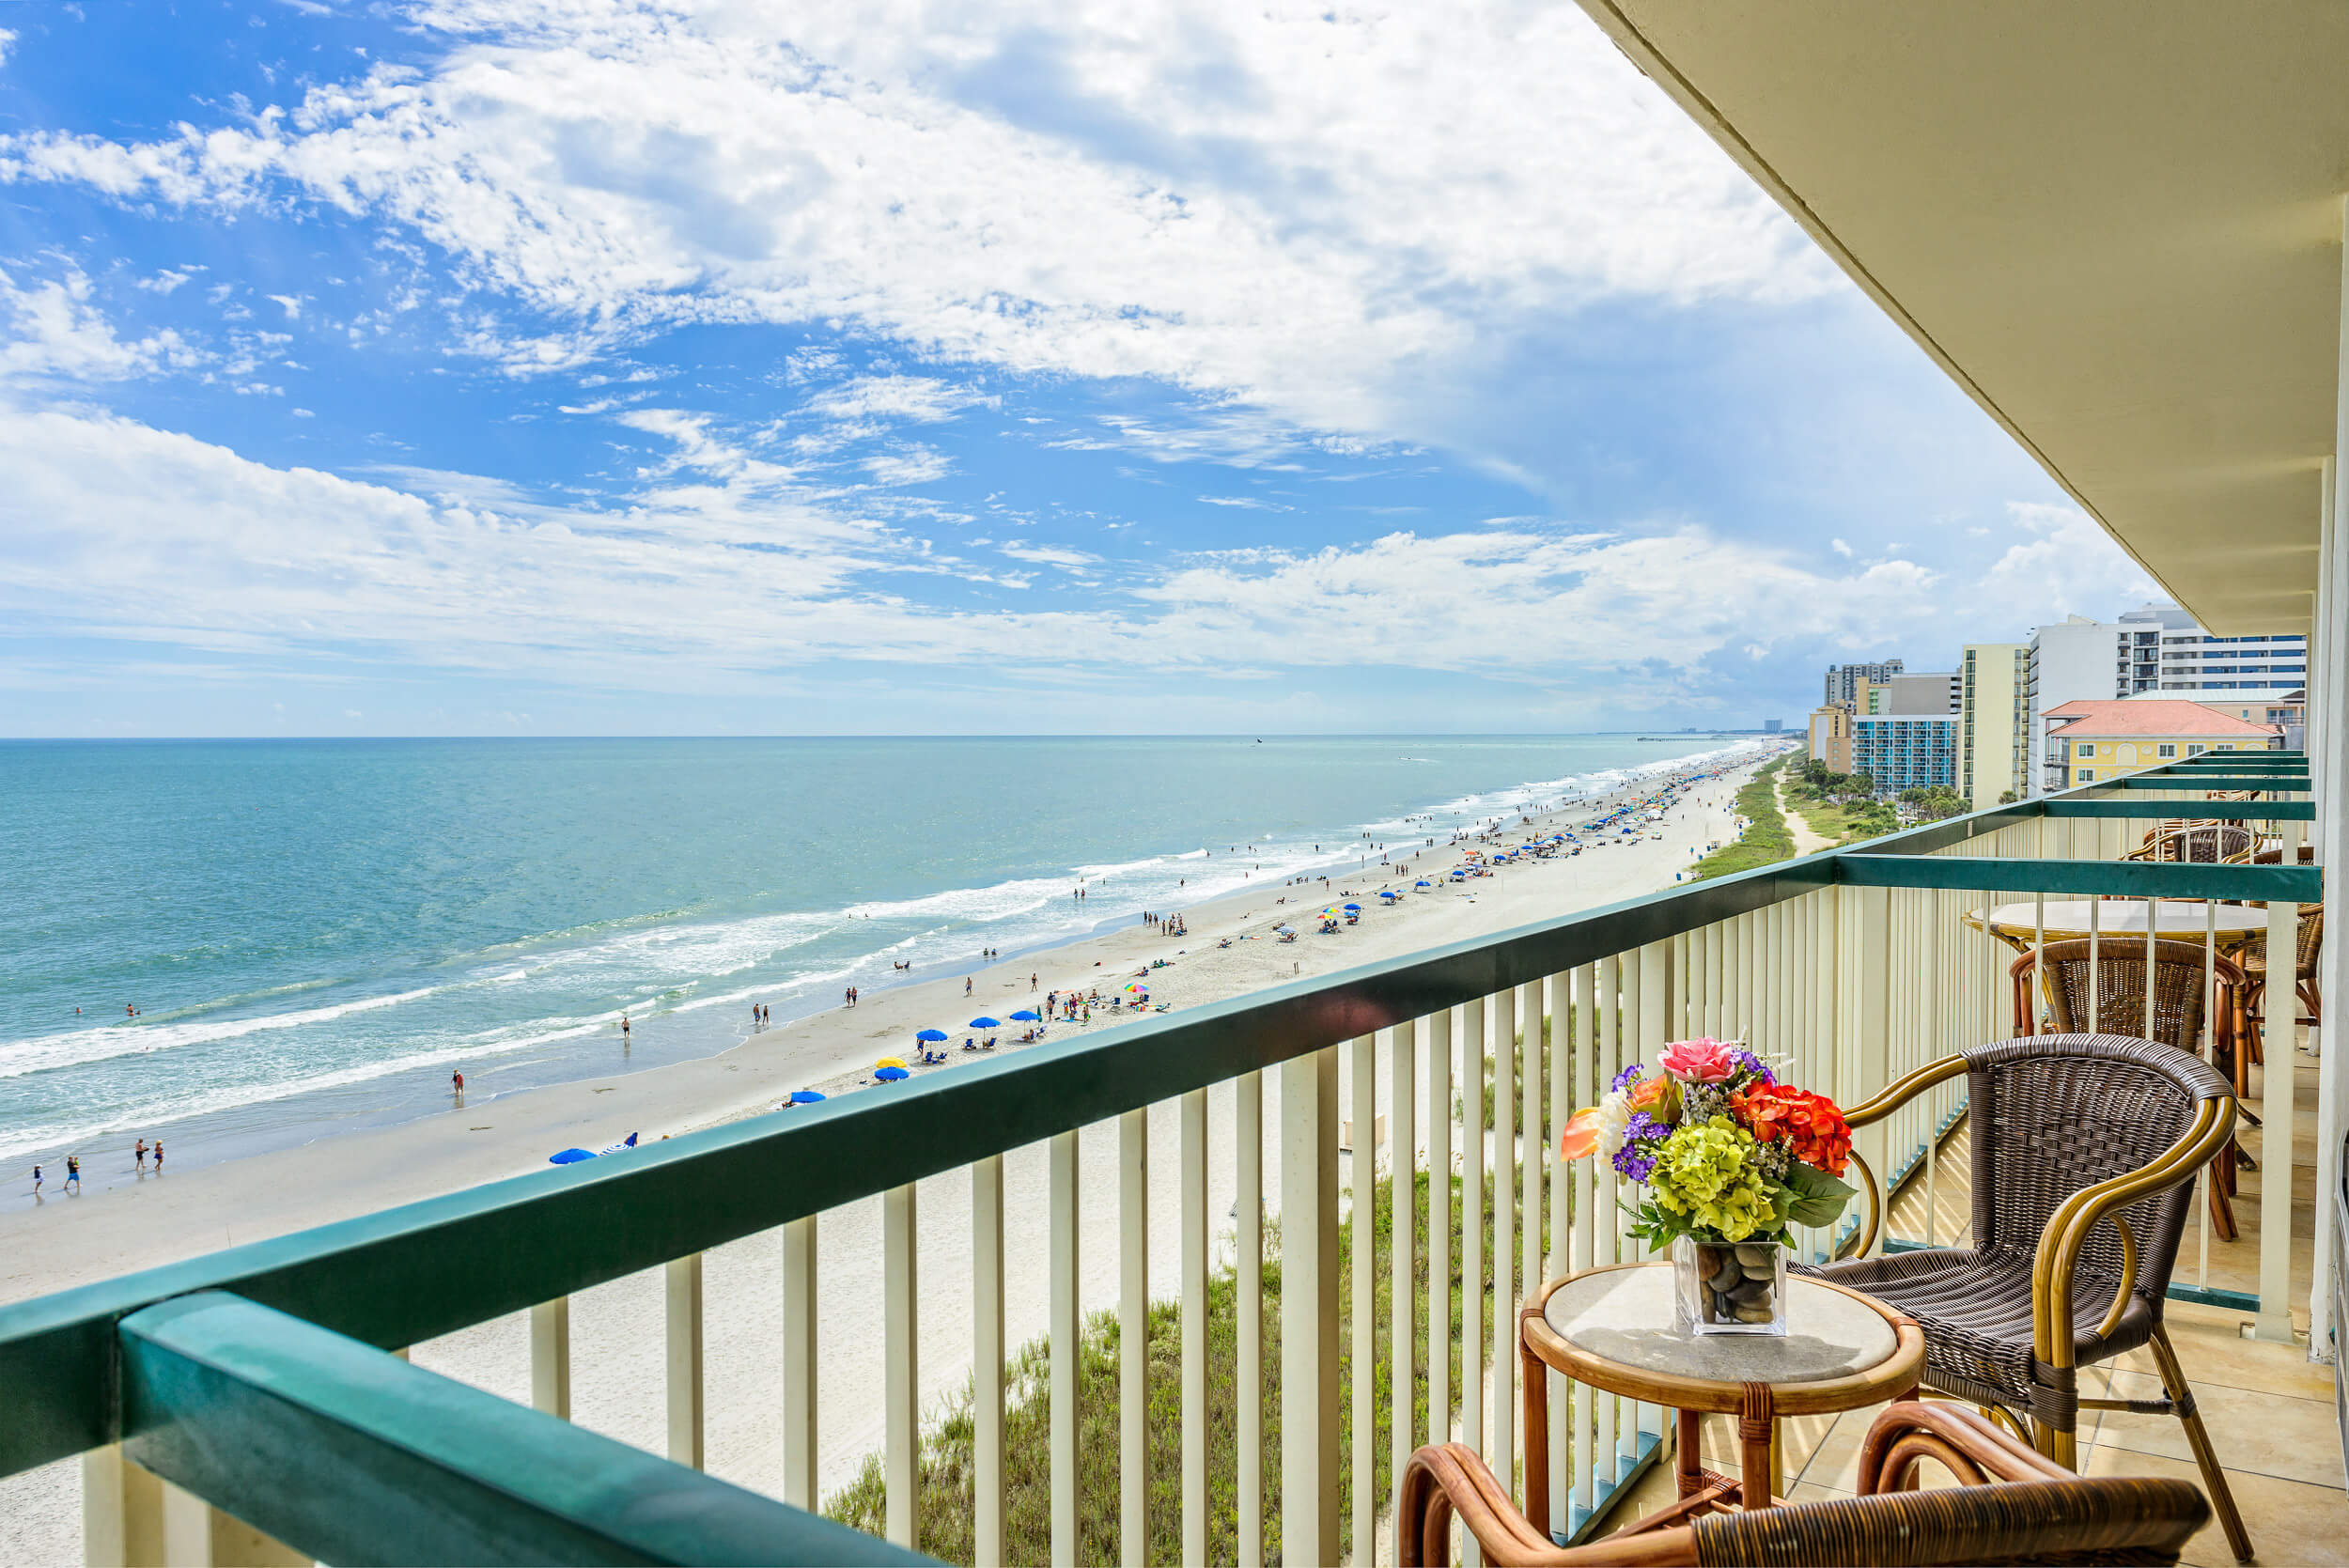 Oceanfront view from Grand Strand resort balcony | Myrtle Beach Resorts | Westgate Myrtle Beach Oceanfront Resort